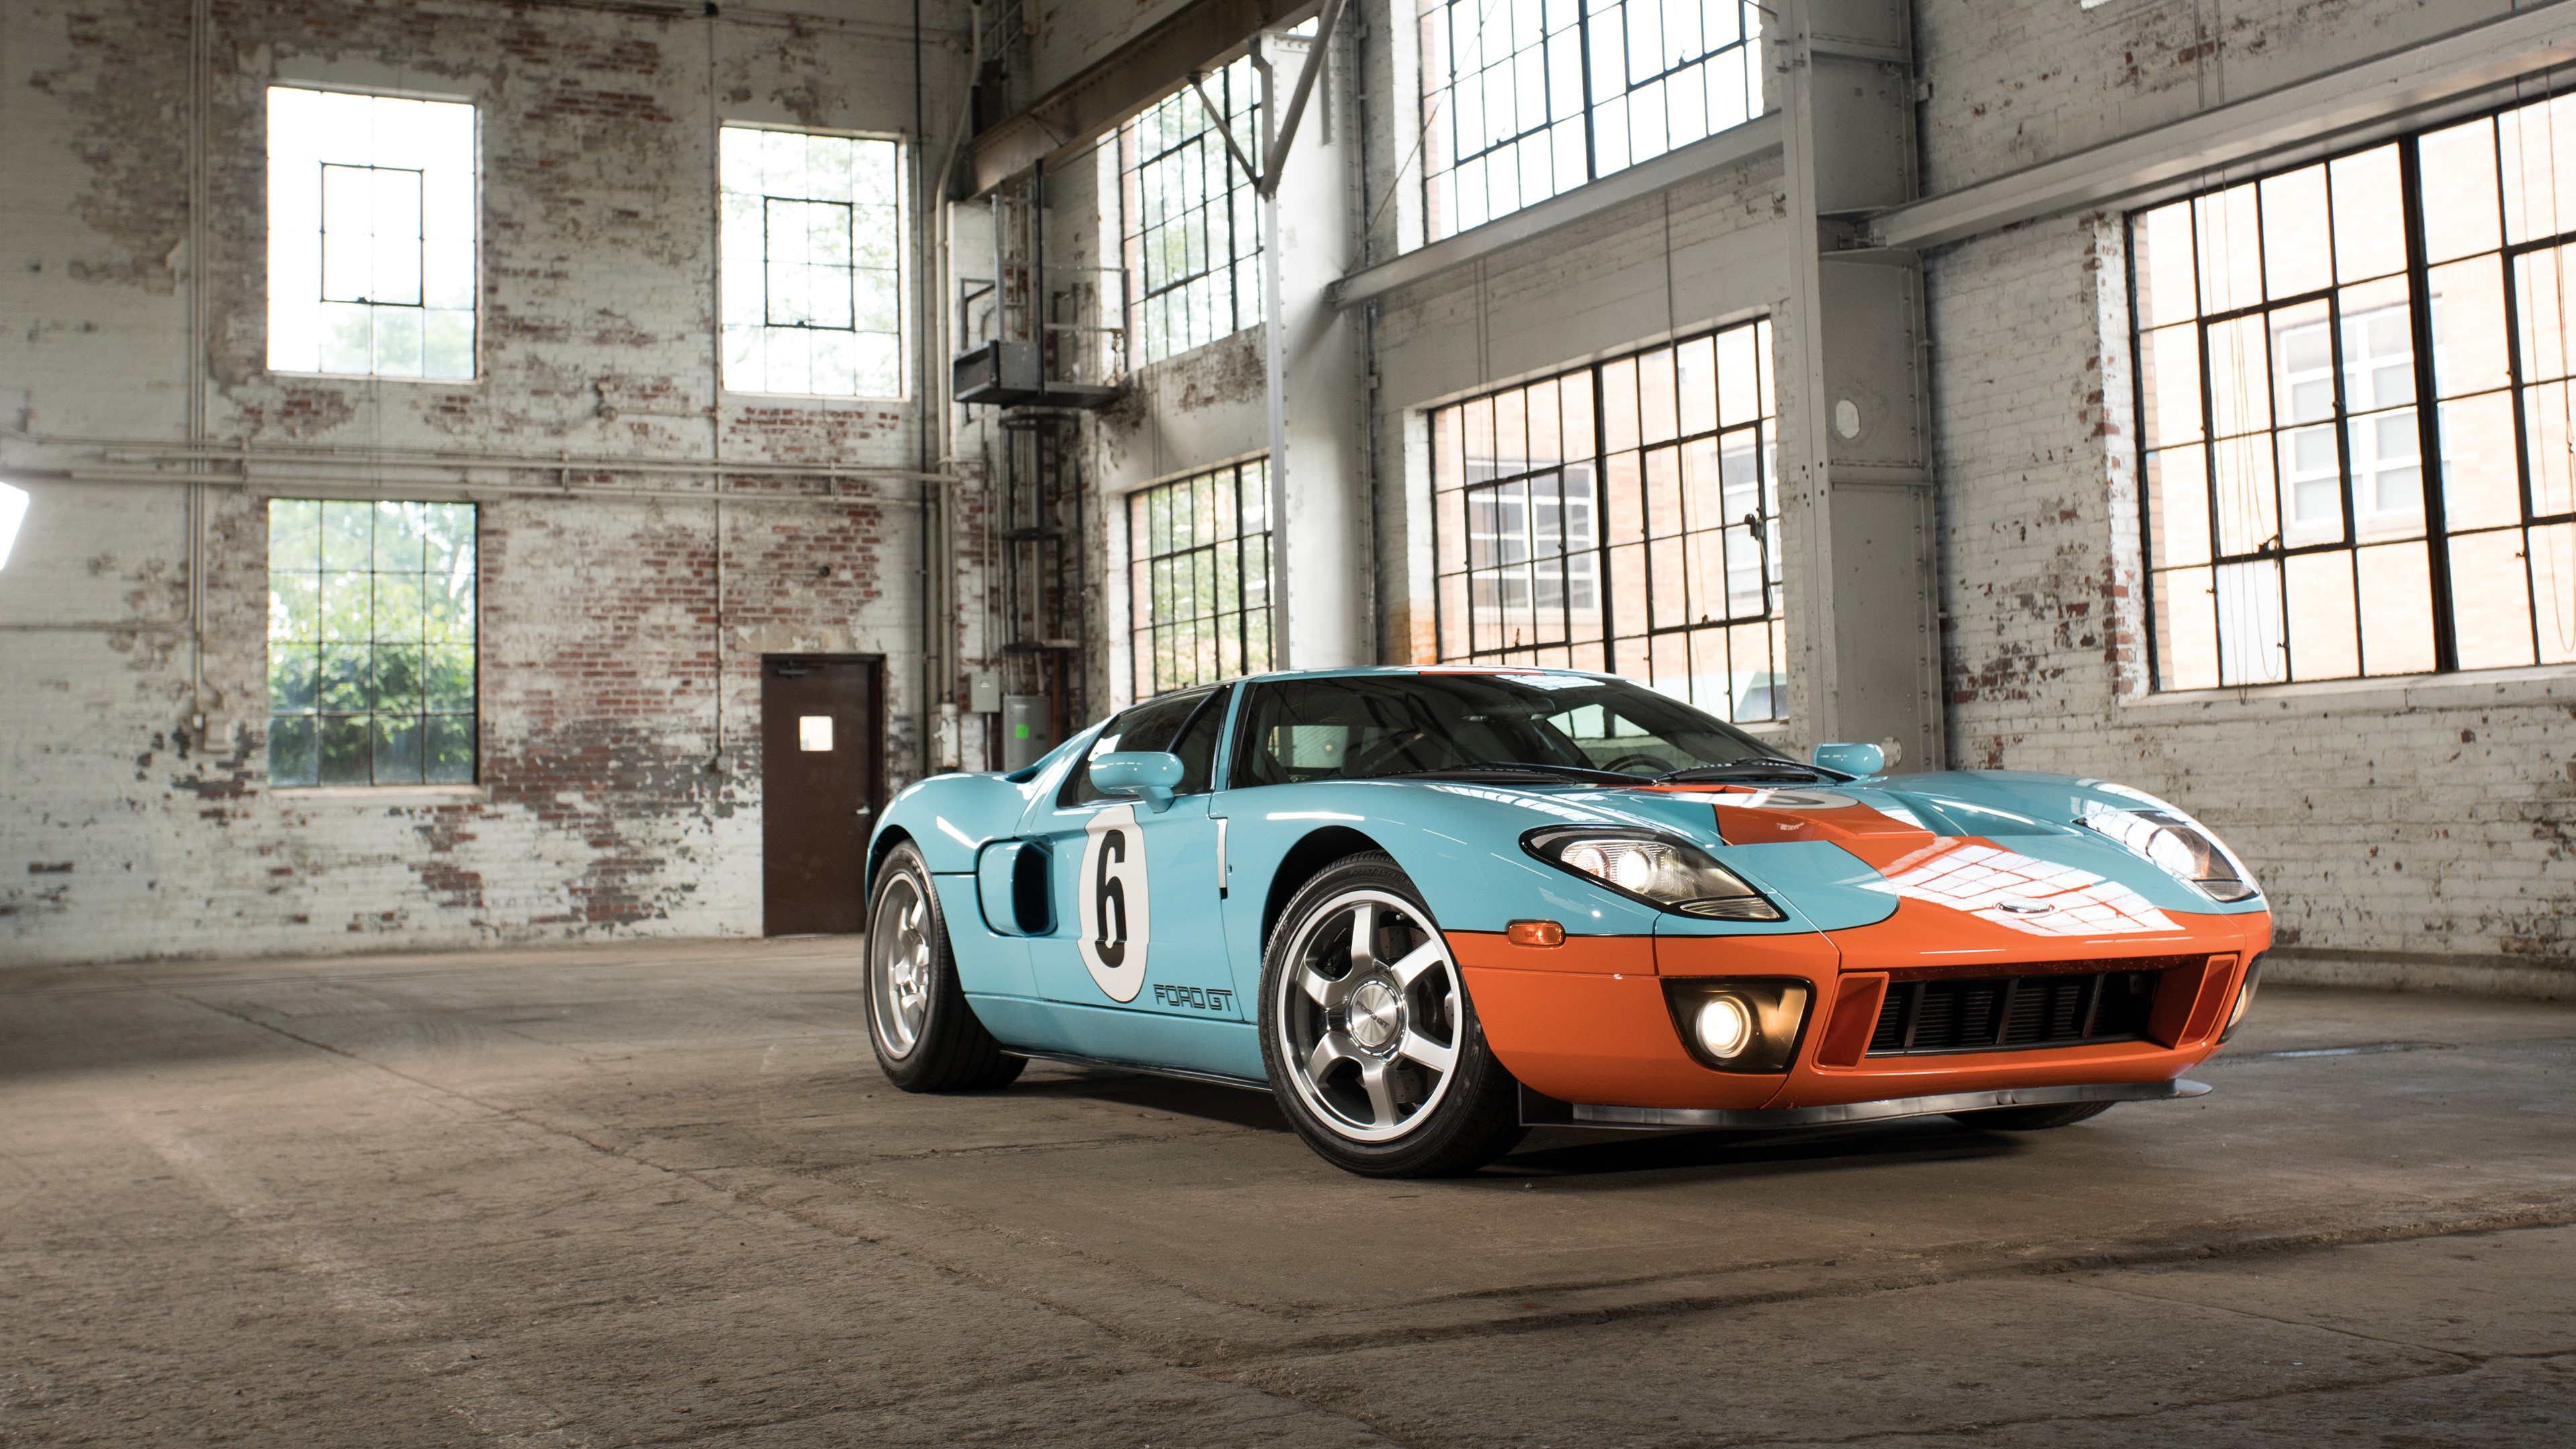 2018 Mustang Wallpaper >> 2006 Ford GT Heritage Edition Wallpaper | HD Car Wallpapers | ID #6795